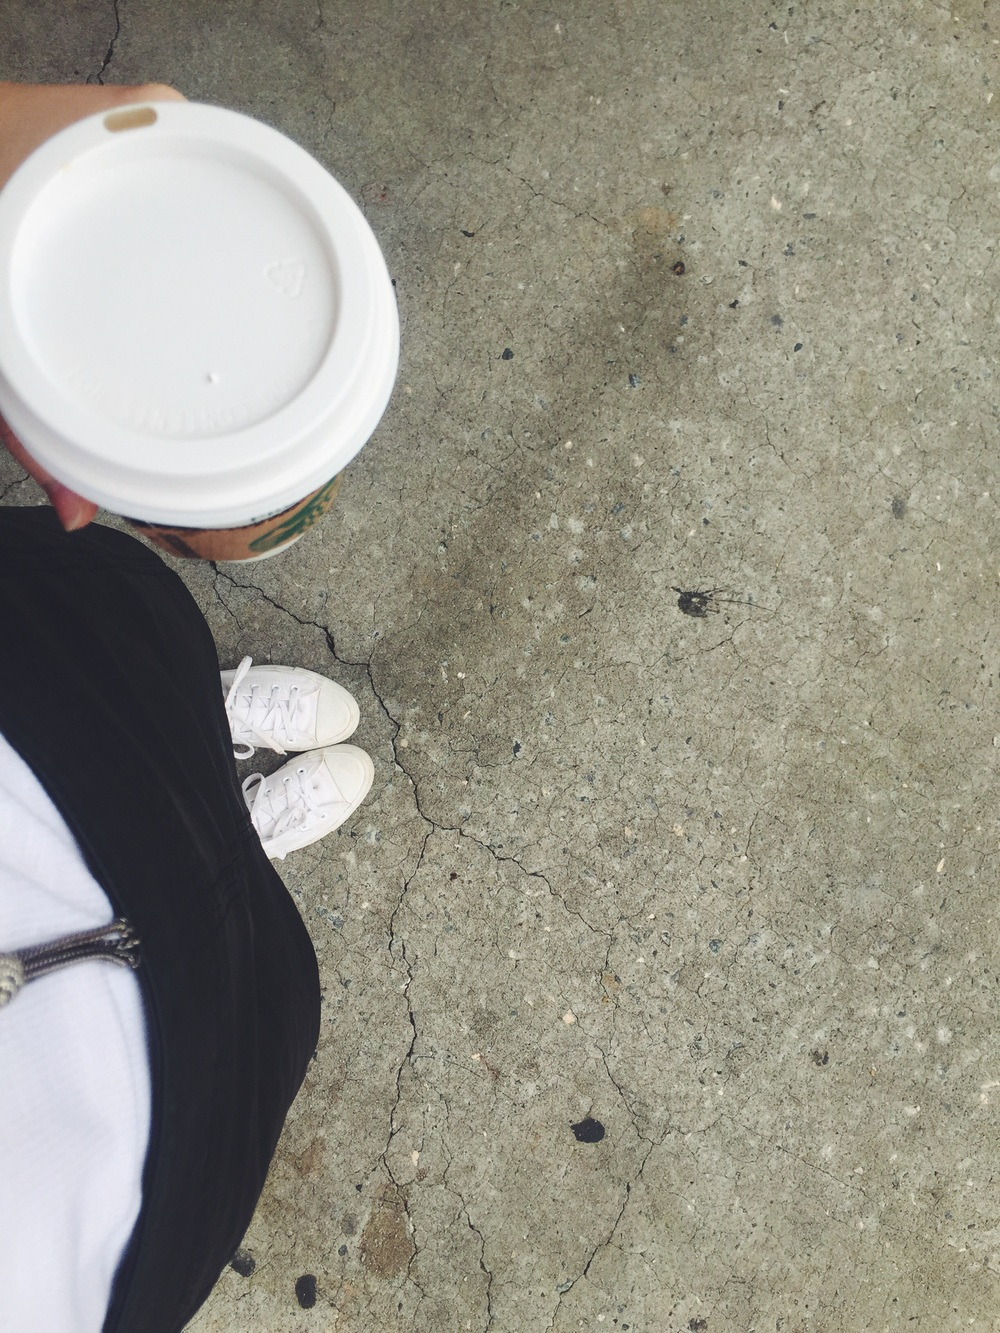 step 1 to changing to world: cute clothes & coffee  (or just sweatpants and coffee...)